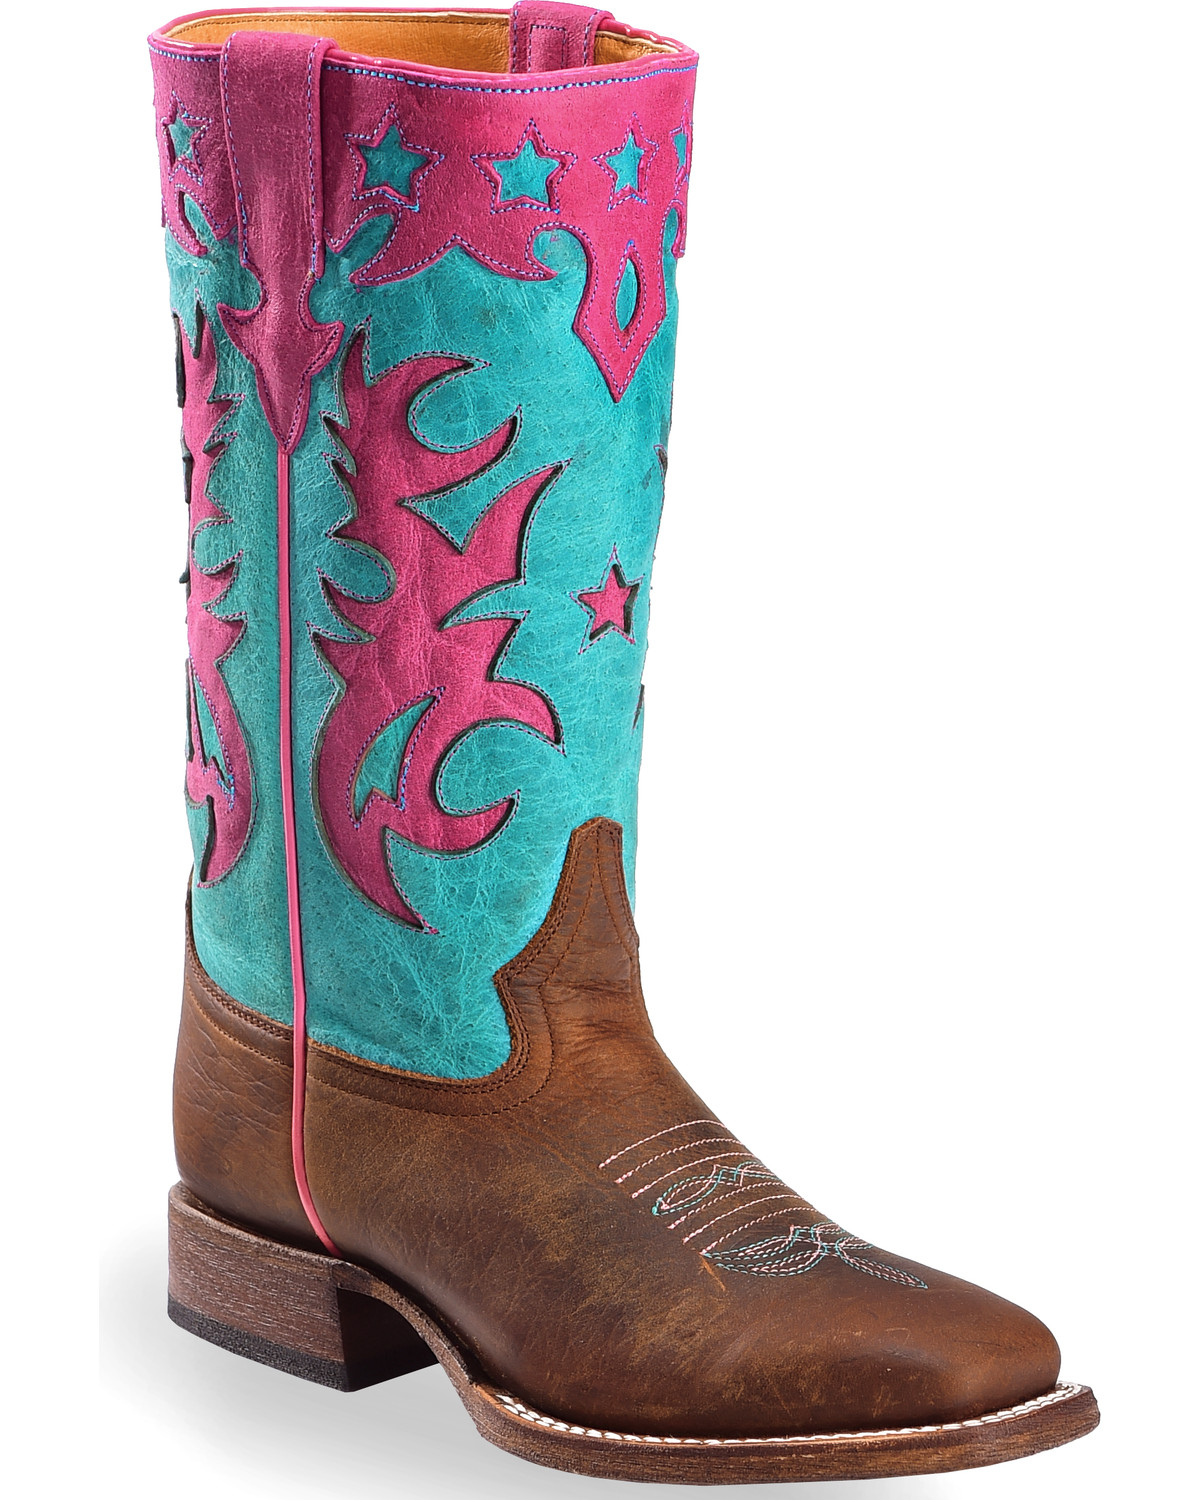 27e12c70714 Macie Bean Girls' Turquoise Sinsation Cowgirl Boots - Square Toe